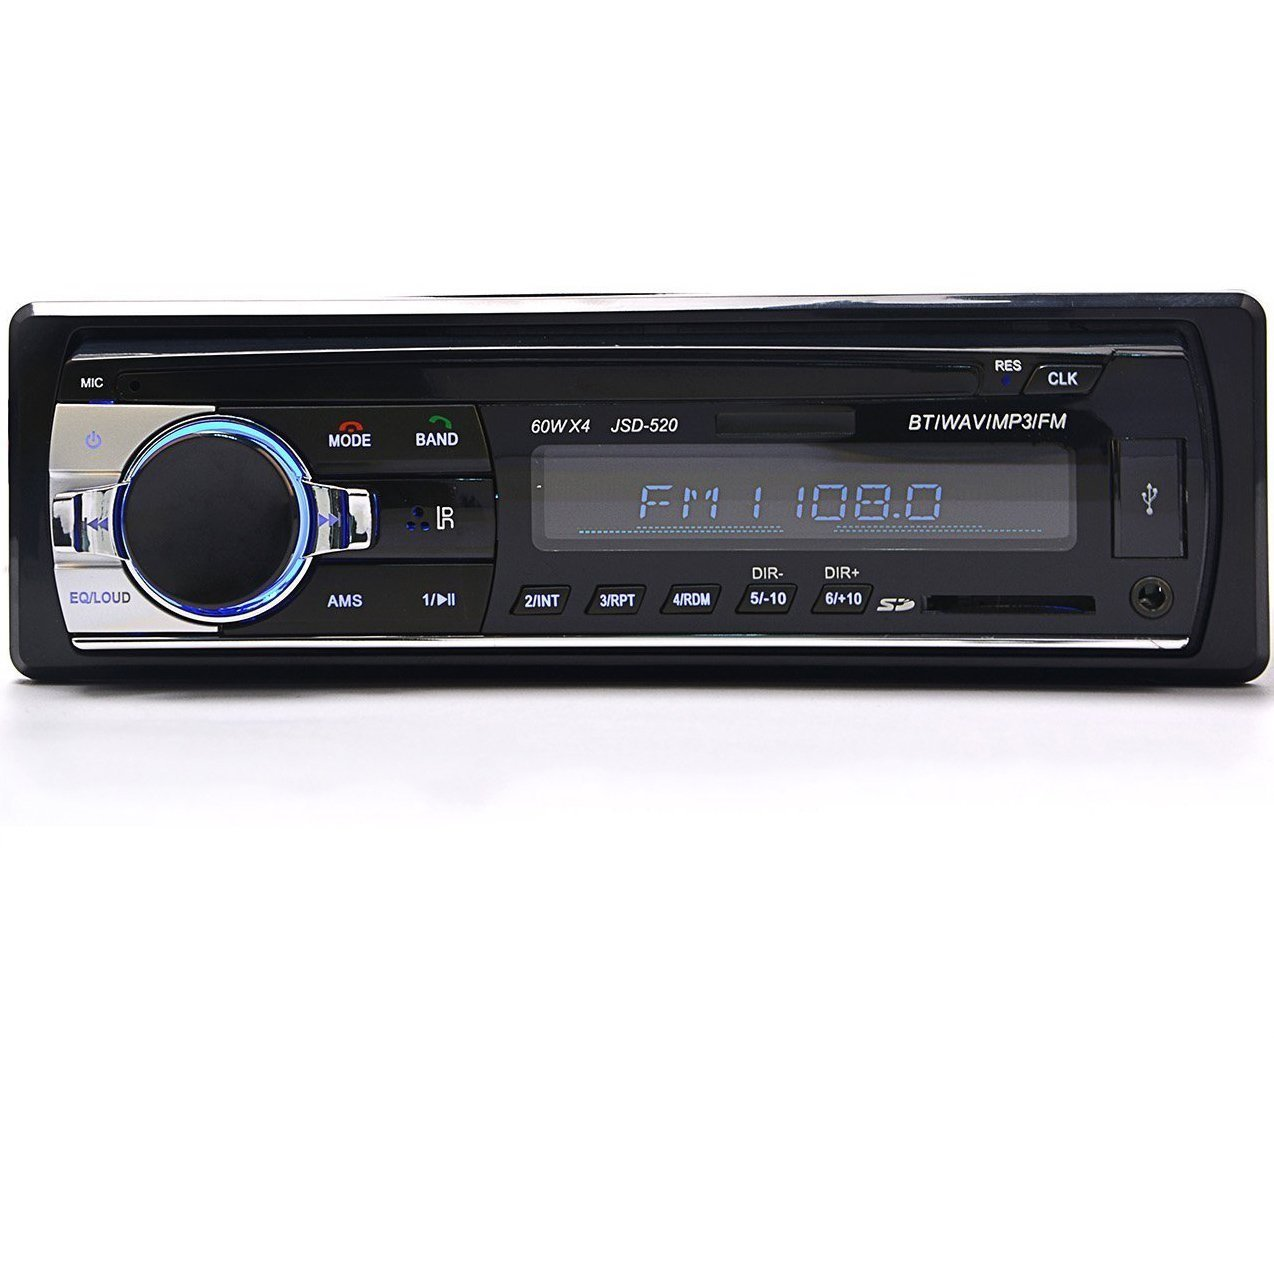 ALUNAR 12v Bluetooth Car Audio Stereo System Mp3 Player Radio in Dash One Din 1 Din With USB AUX Input SD Slot Fm Receiver